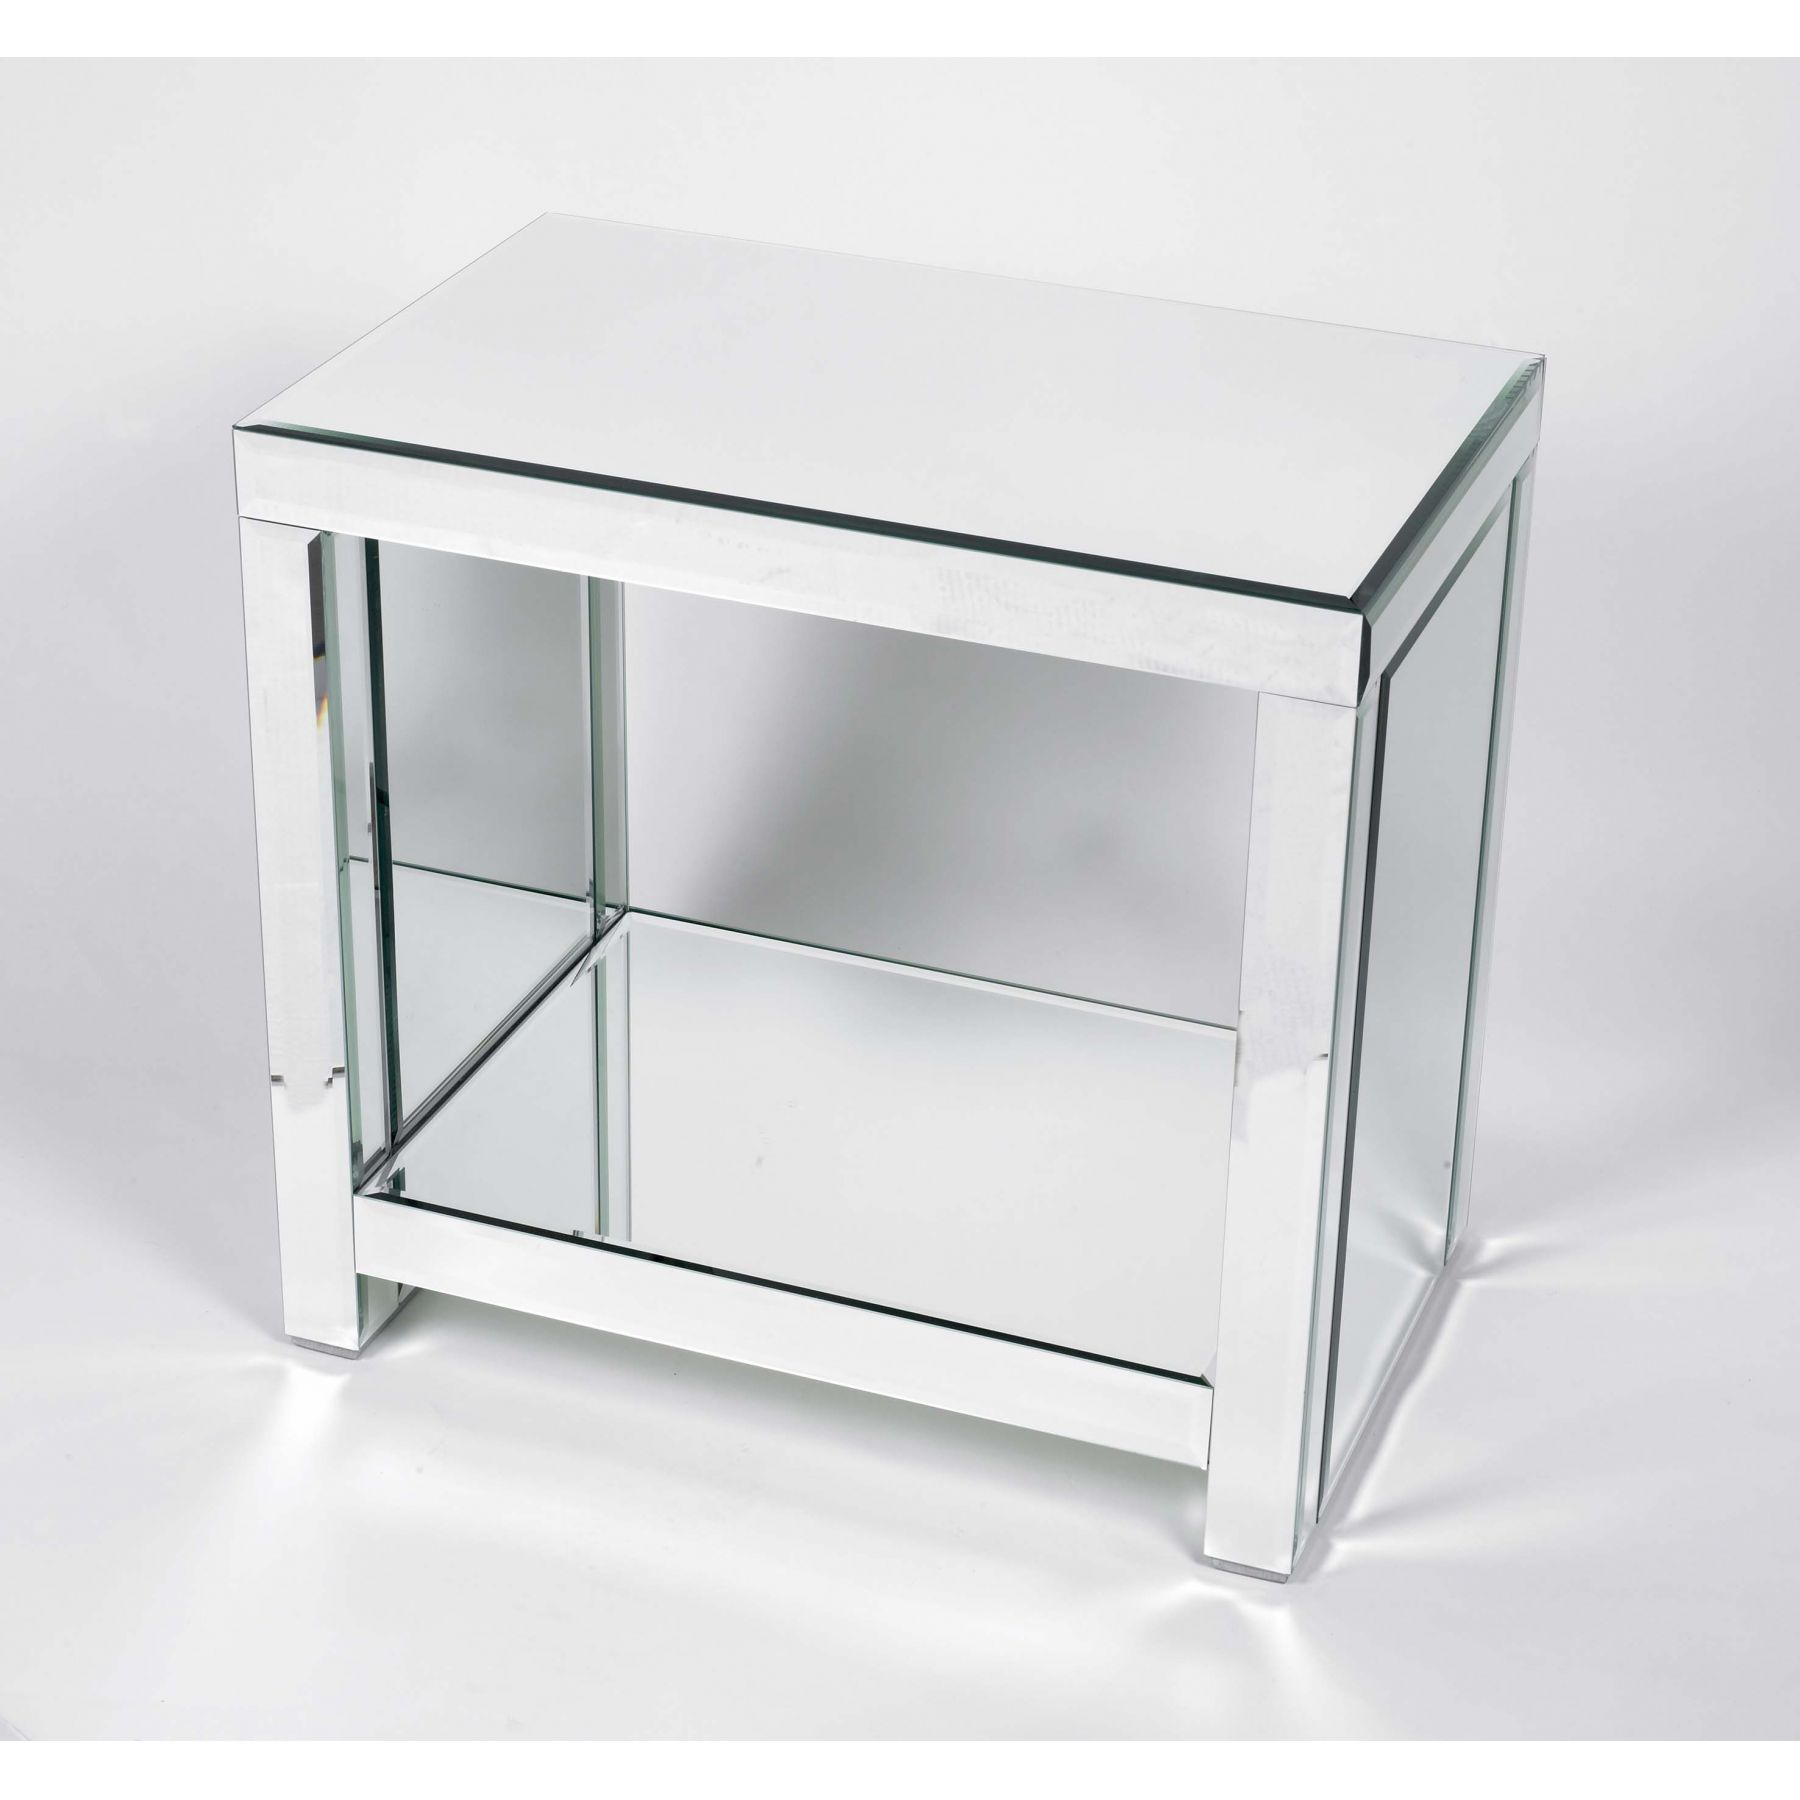 furniture elegant mirrored accent table for home ideas white with storage base tables half round target skinny end antique brass coffee desks simple sofa cherry ikea baskets west